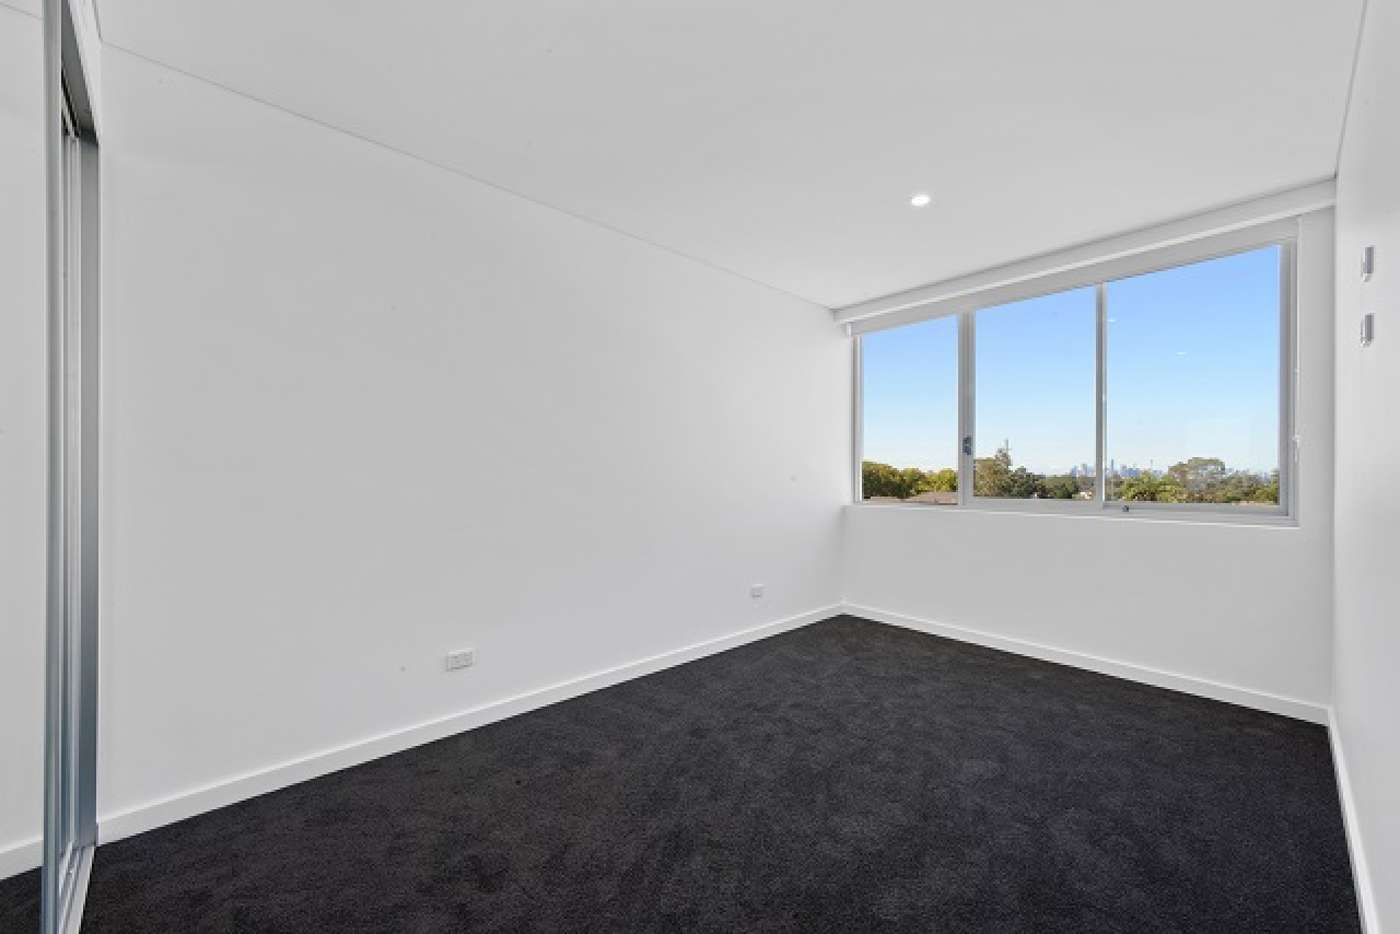 Sixth view of Homely apartment listing, 404/8 Monash  Road, Gladesville NSW 2111